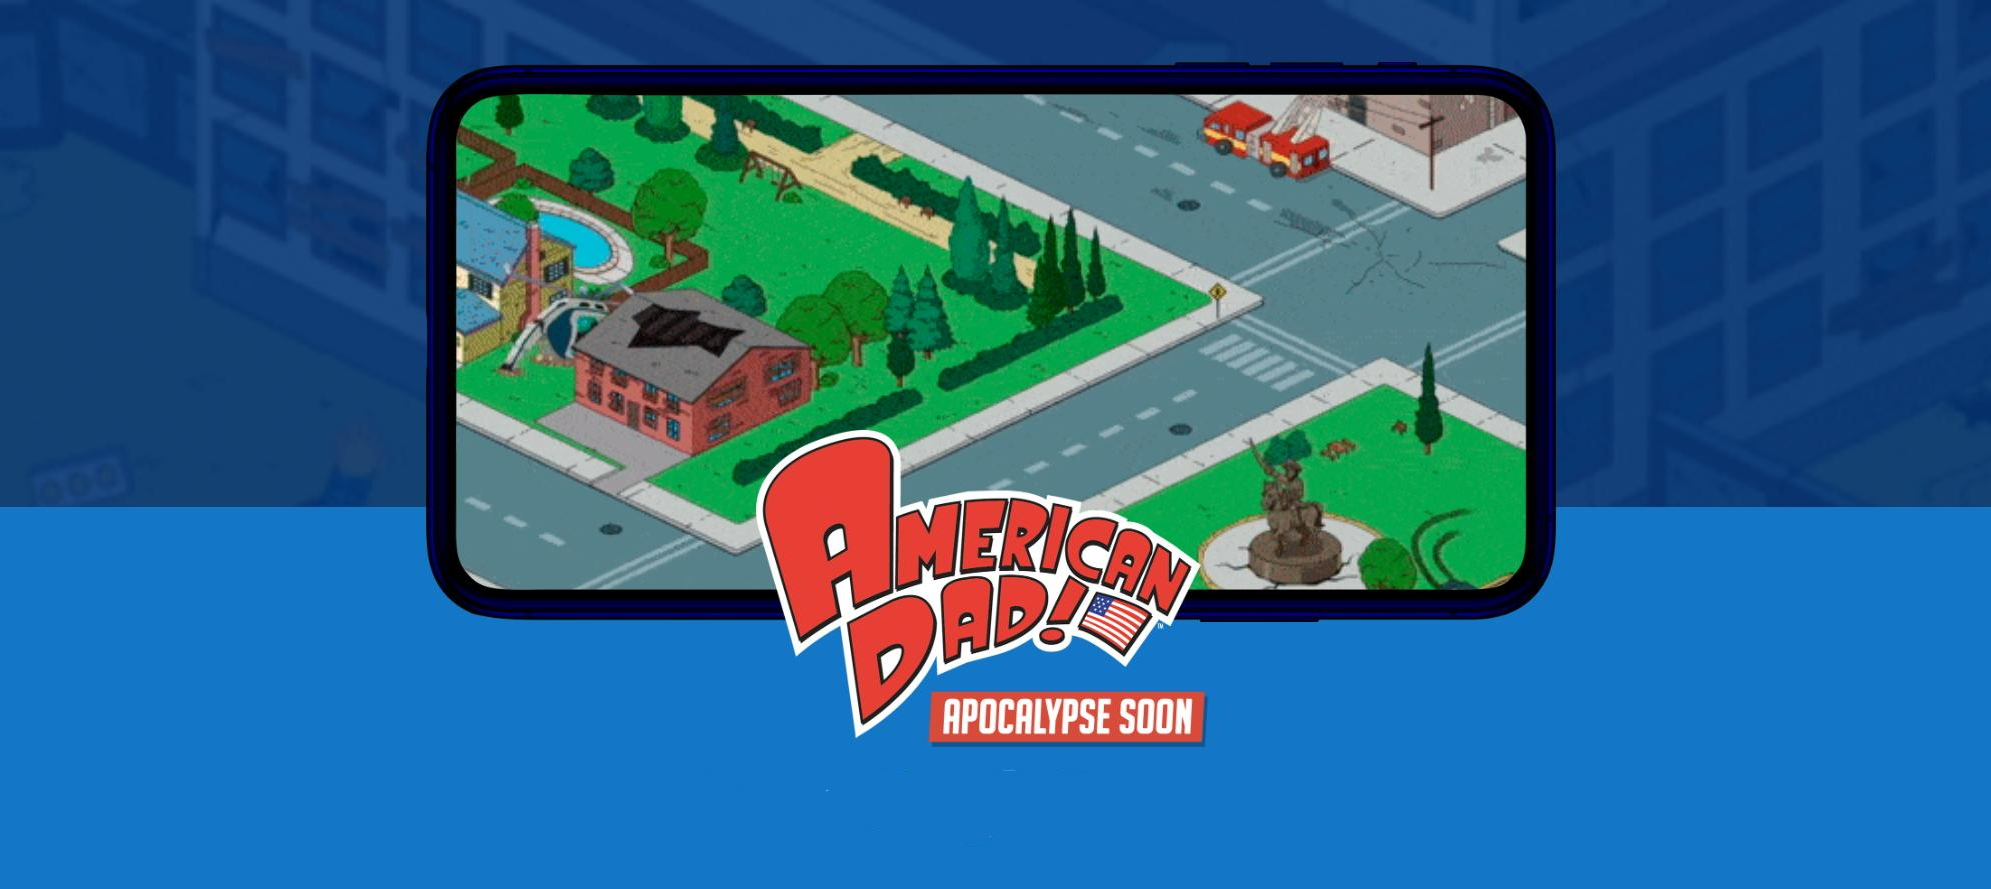 American Dad! Apocalypse is a Fallout Shelter-style strategy game, pre-registration now open